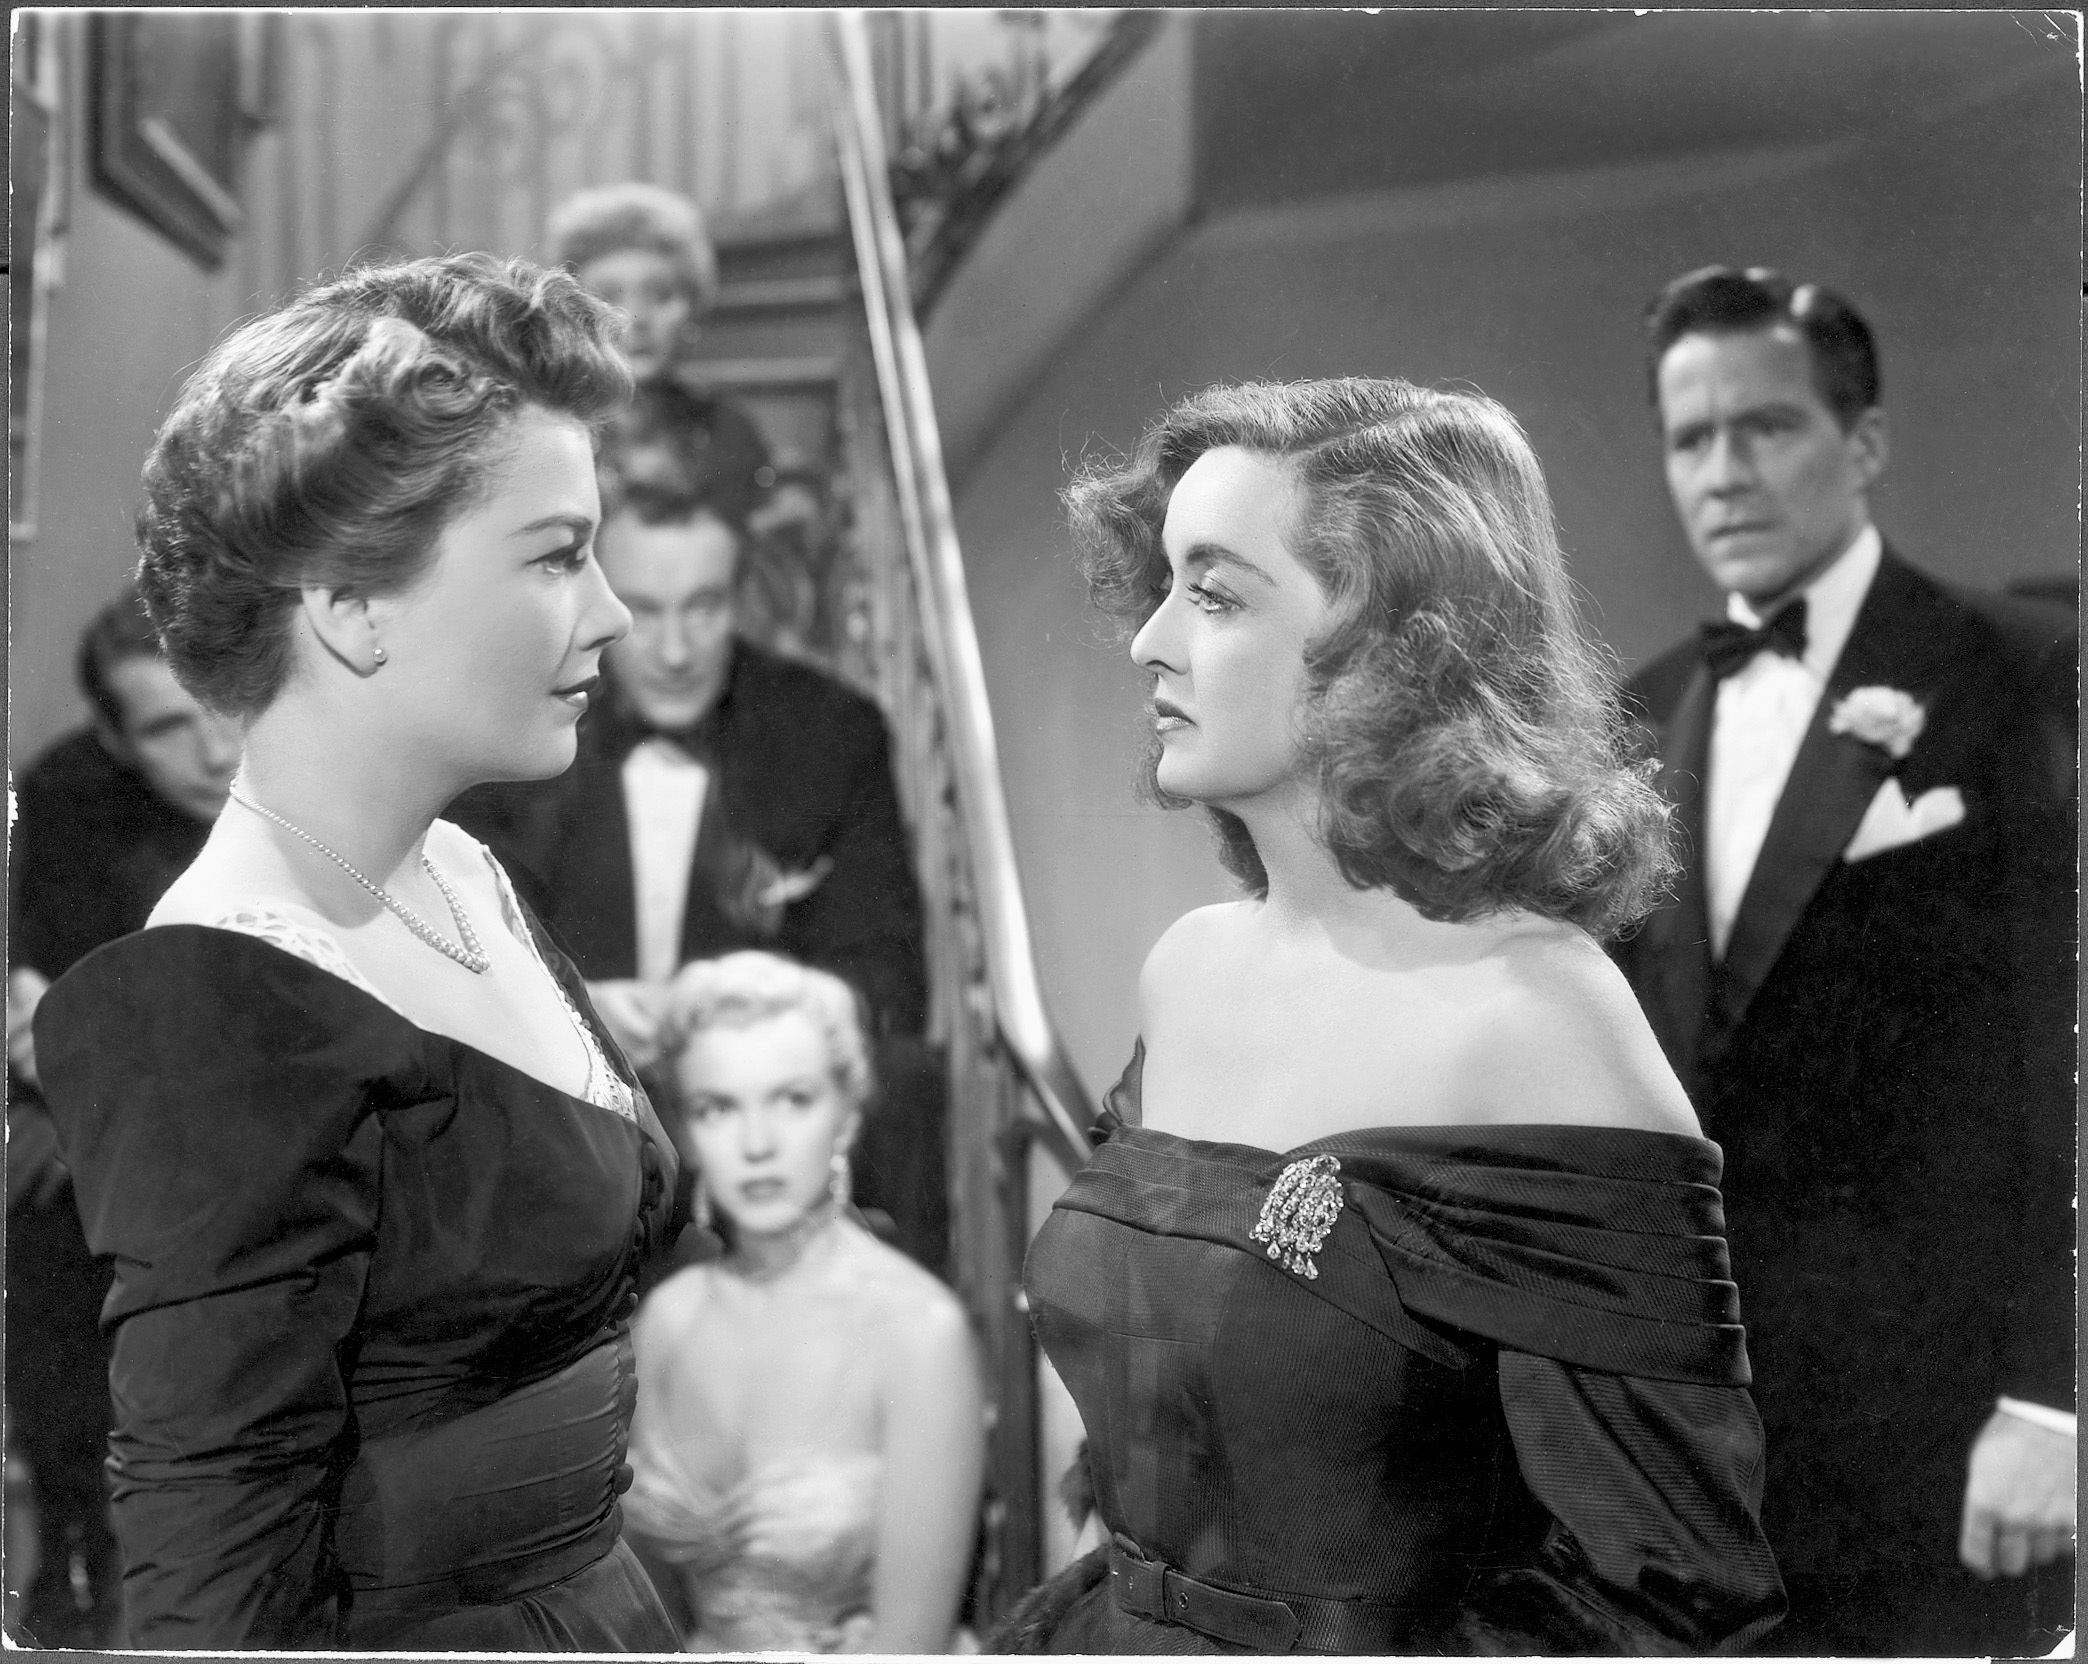 All About Eve (1950). Directed by Joseph Mankiewicz. Credit: MoMA Film Archive. Pictured: Anne Baxter, Bette Davis, George Sanders